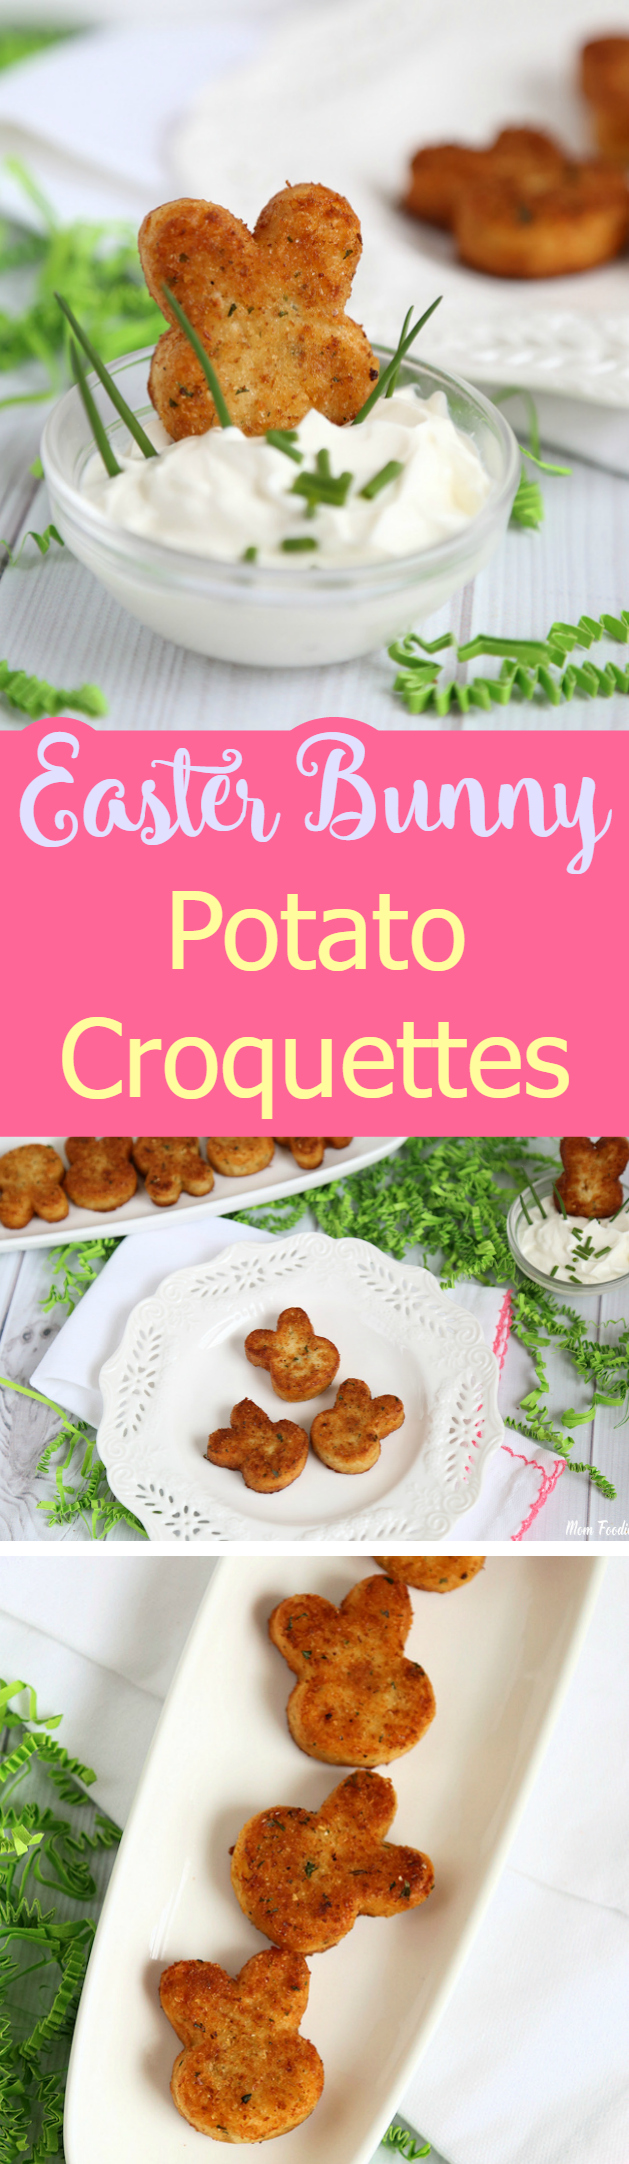 Easter Bunny Potato Croquette Recipe- a fun Savory Easter treat kids & adults will love.